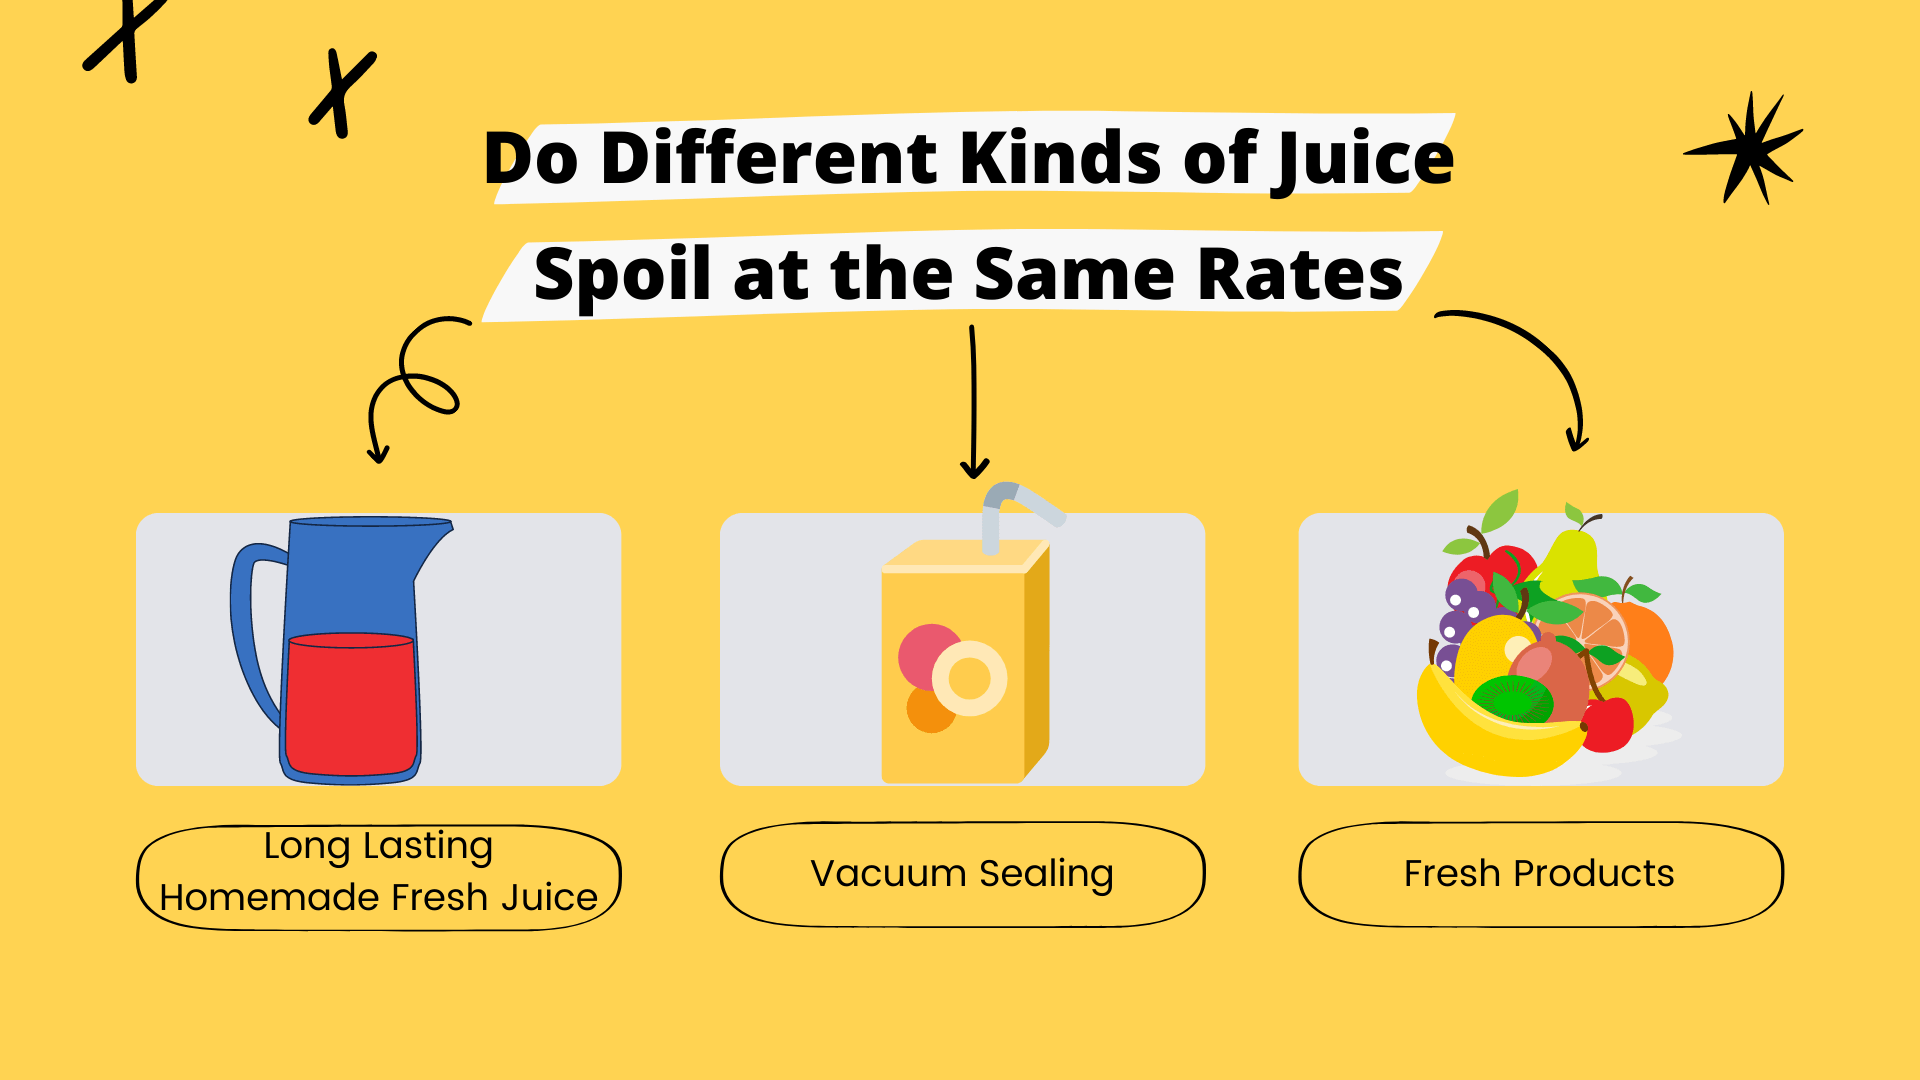 Do different kinds of juice spoil at the same rates